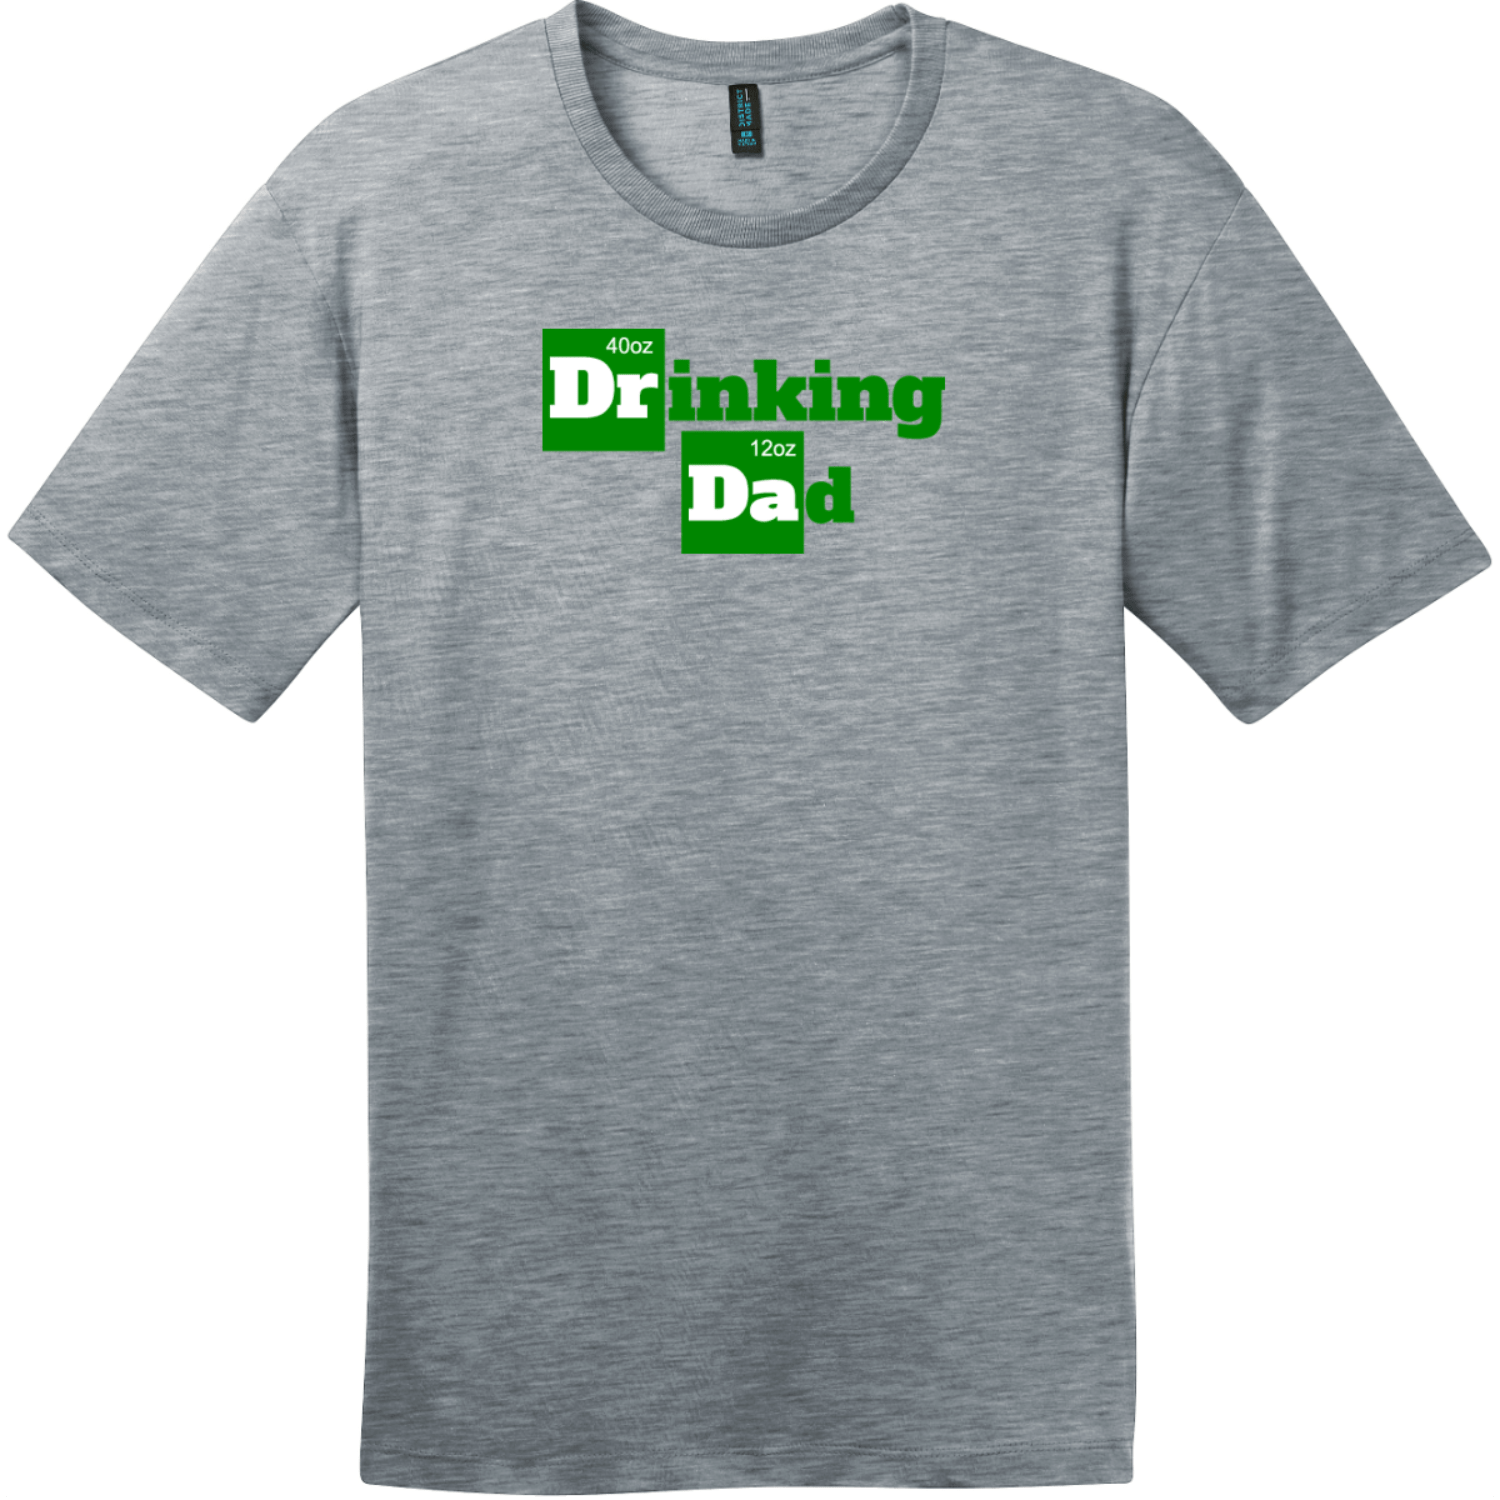 Drinking Dad Funny Beer T-Shirt Heathered Steel District Perfect Weight Tee DT104